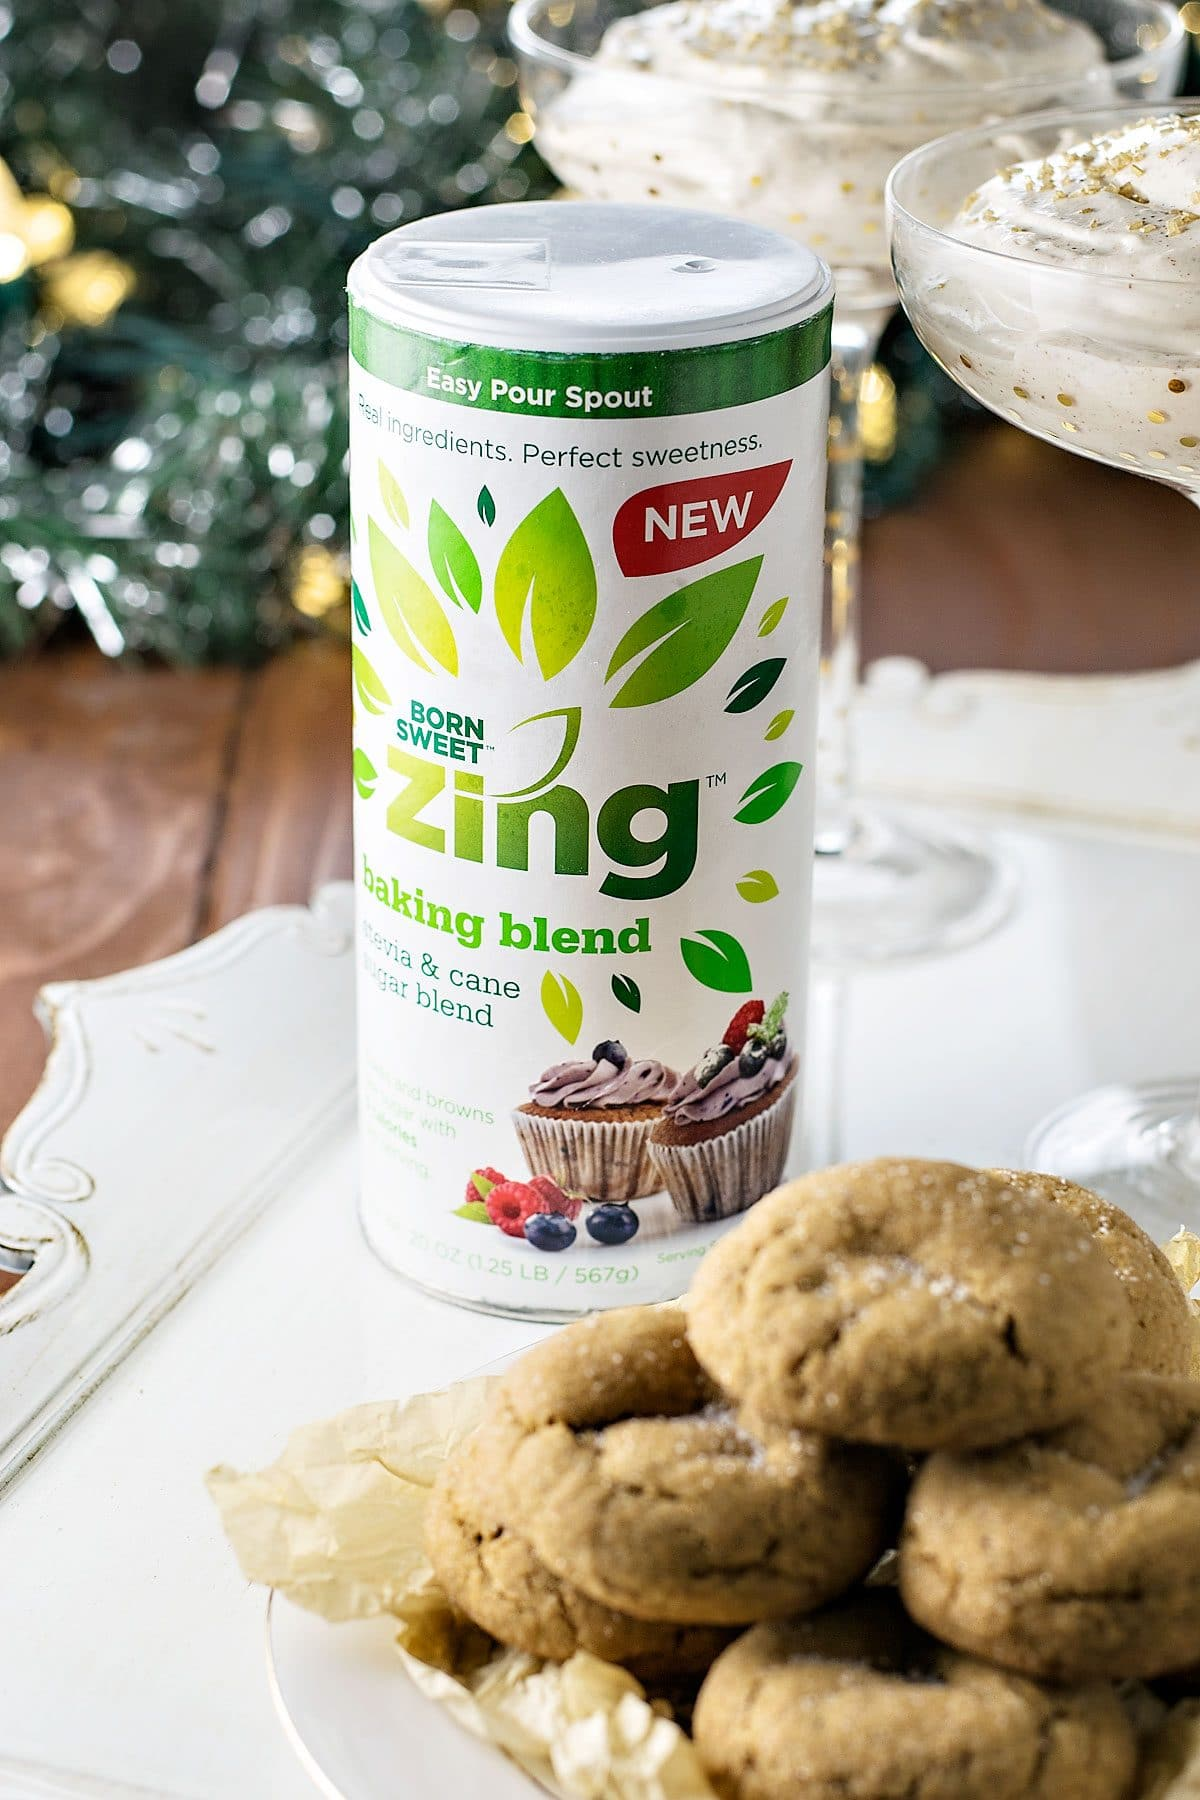 Skinny Ginger Cookies and Eggnog Dip! Need a festive treat to enjoy this holiday season without all the guilt? The ginger cookies are soft 'n chewy and the eggnog dip is creamy 'n sweet – all with fewer calories!   HomemadeHooplah.com #ZingBakingHoliday #ad